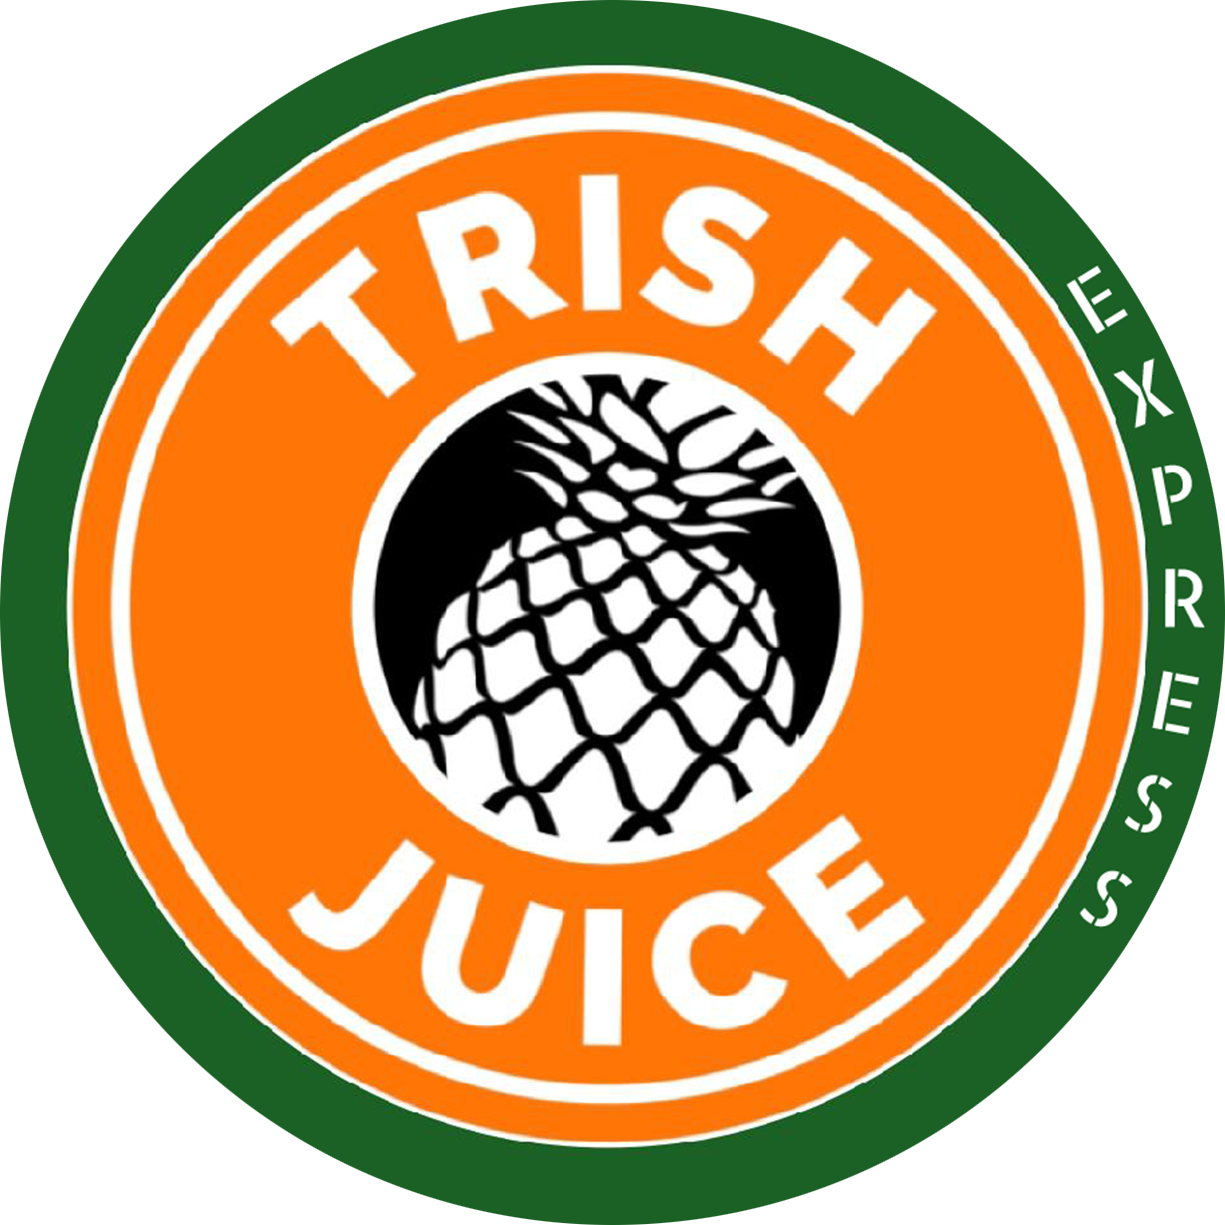 TRISH JUICE EXPRESS